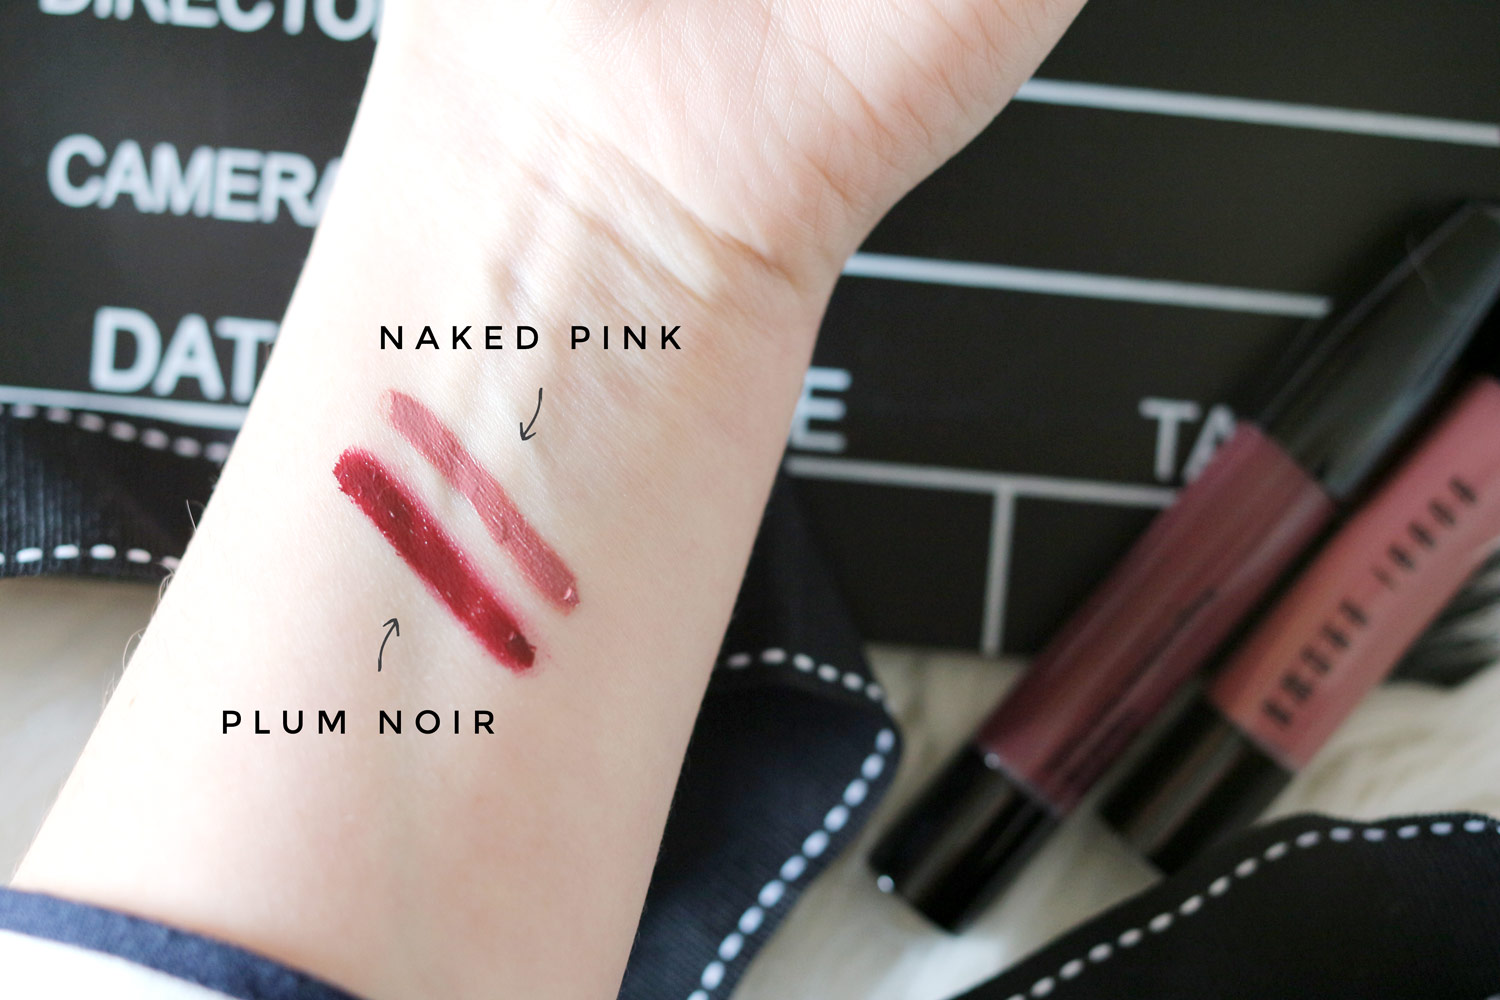 bobbi-brown-art-stick-liquid-lip-review-nakd-pink-plum-noir-2